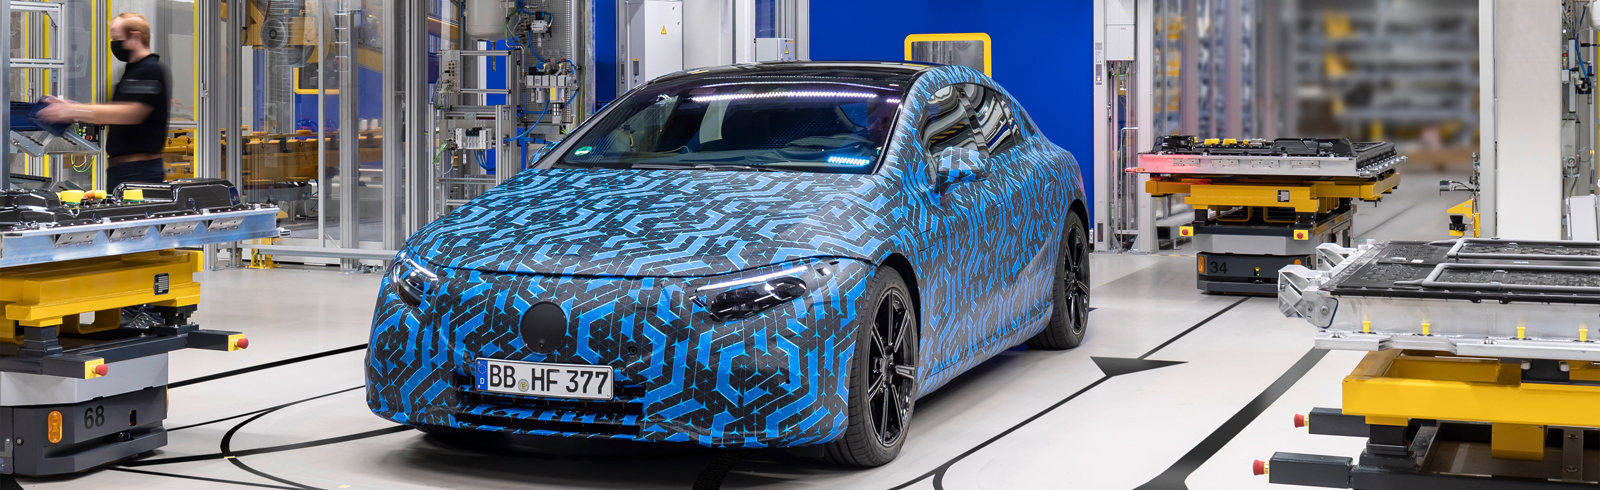 Mercedes-Benz will launch 6 new electrified EQ models by 2022